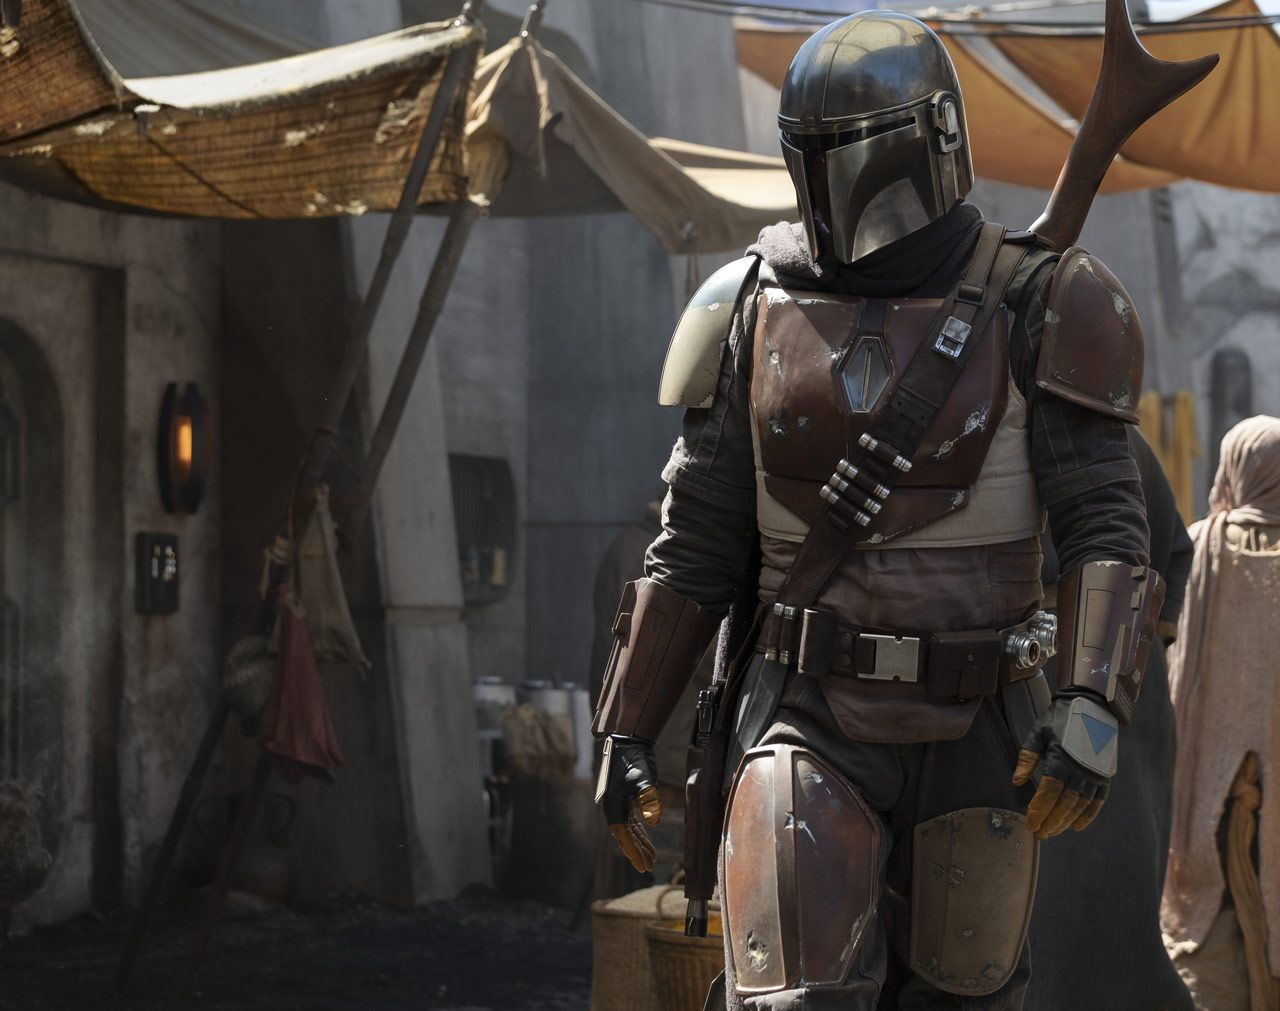 Star Wars: Taika Waititi, Bryce Dallas Howard to Direct on The Mandalorian